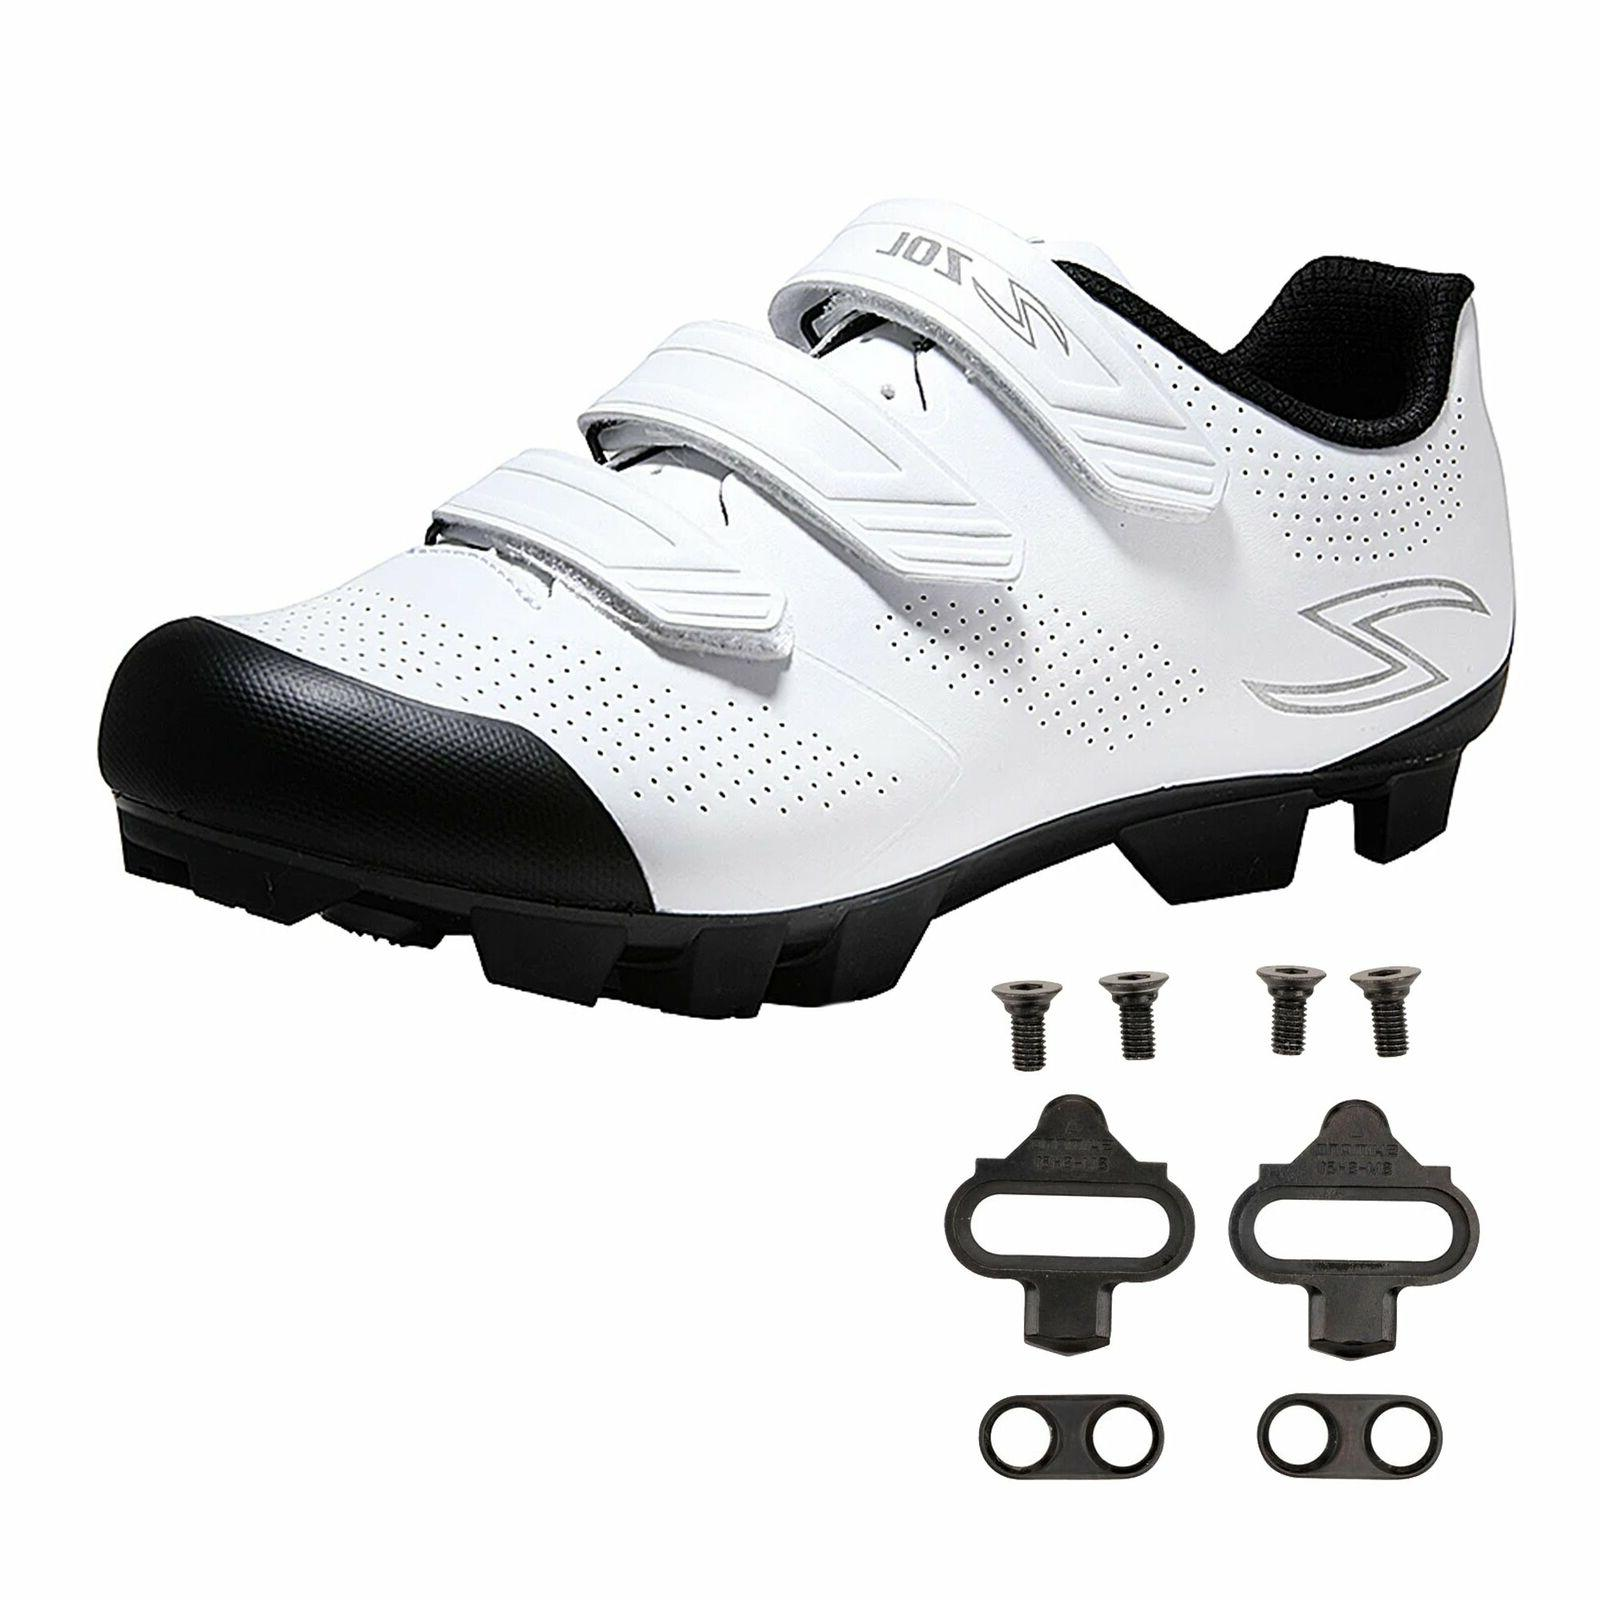 raptor mtb cycling shoes w spd cleats